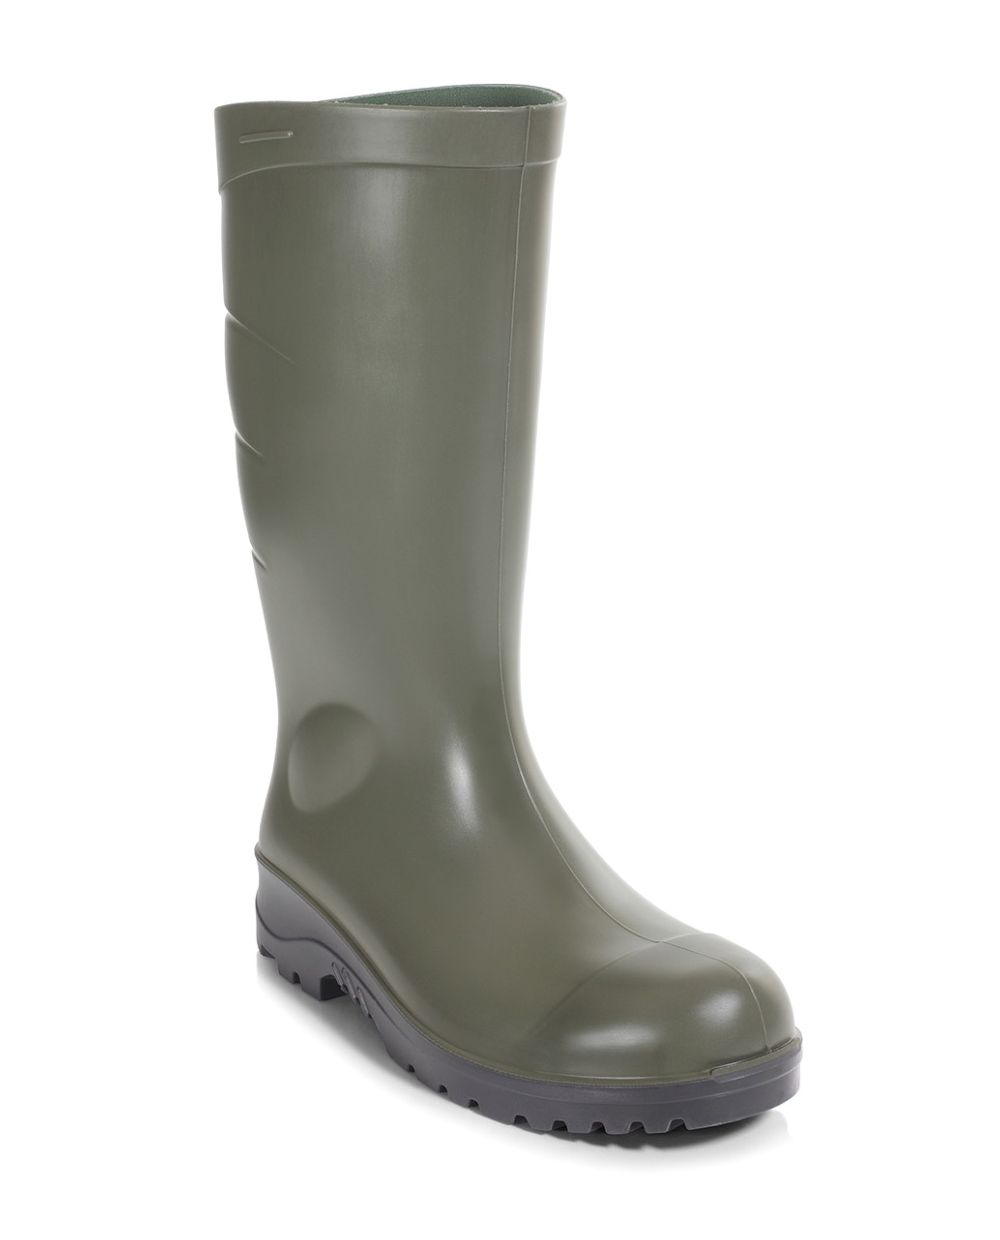 Wayne O4 Non- Safety PU Wellingtons (P2010)